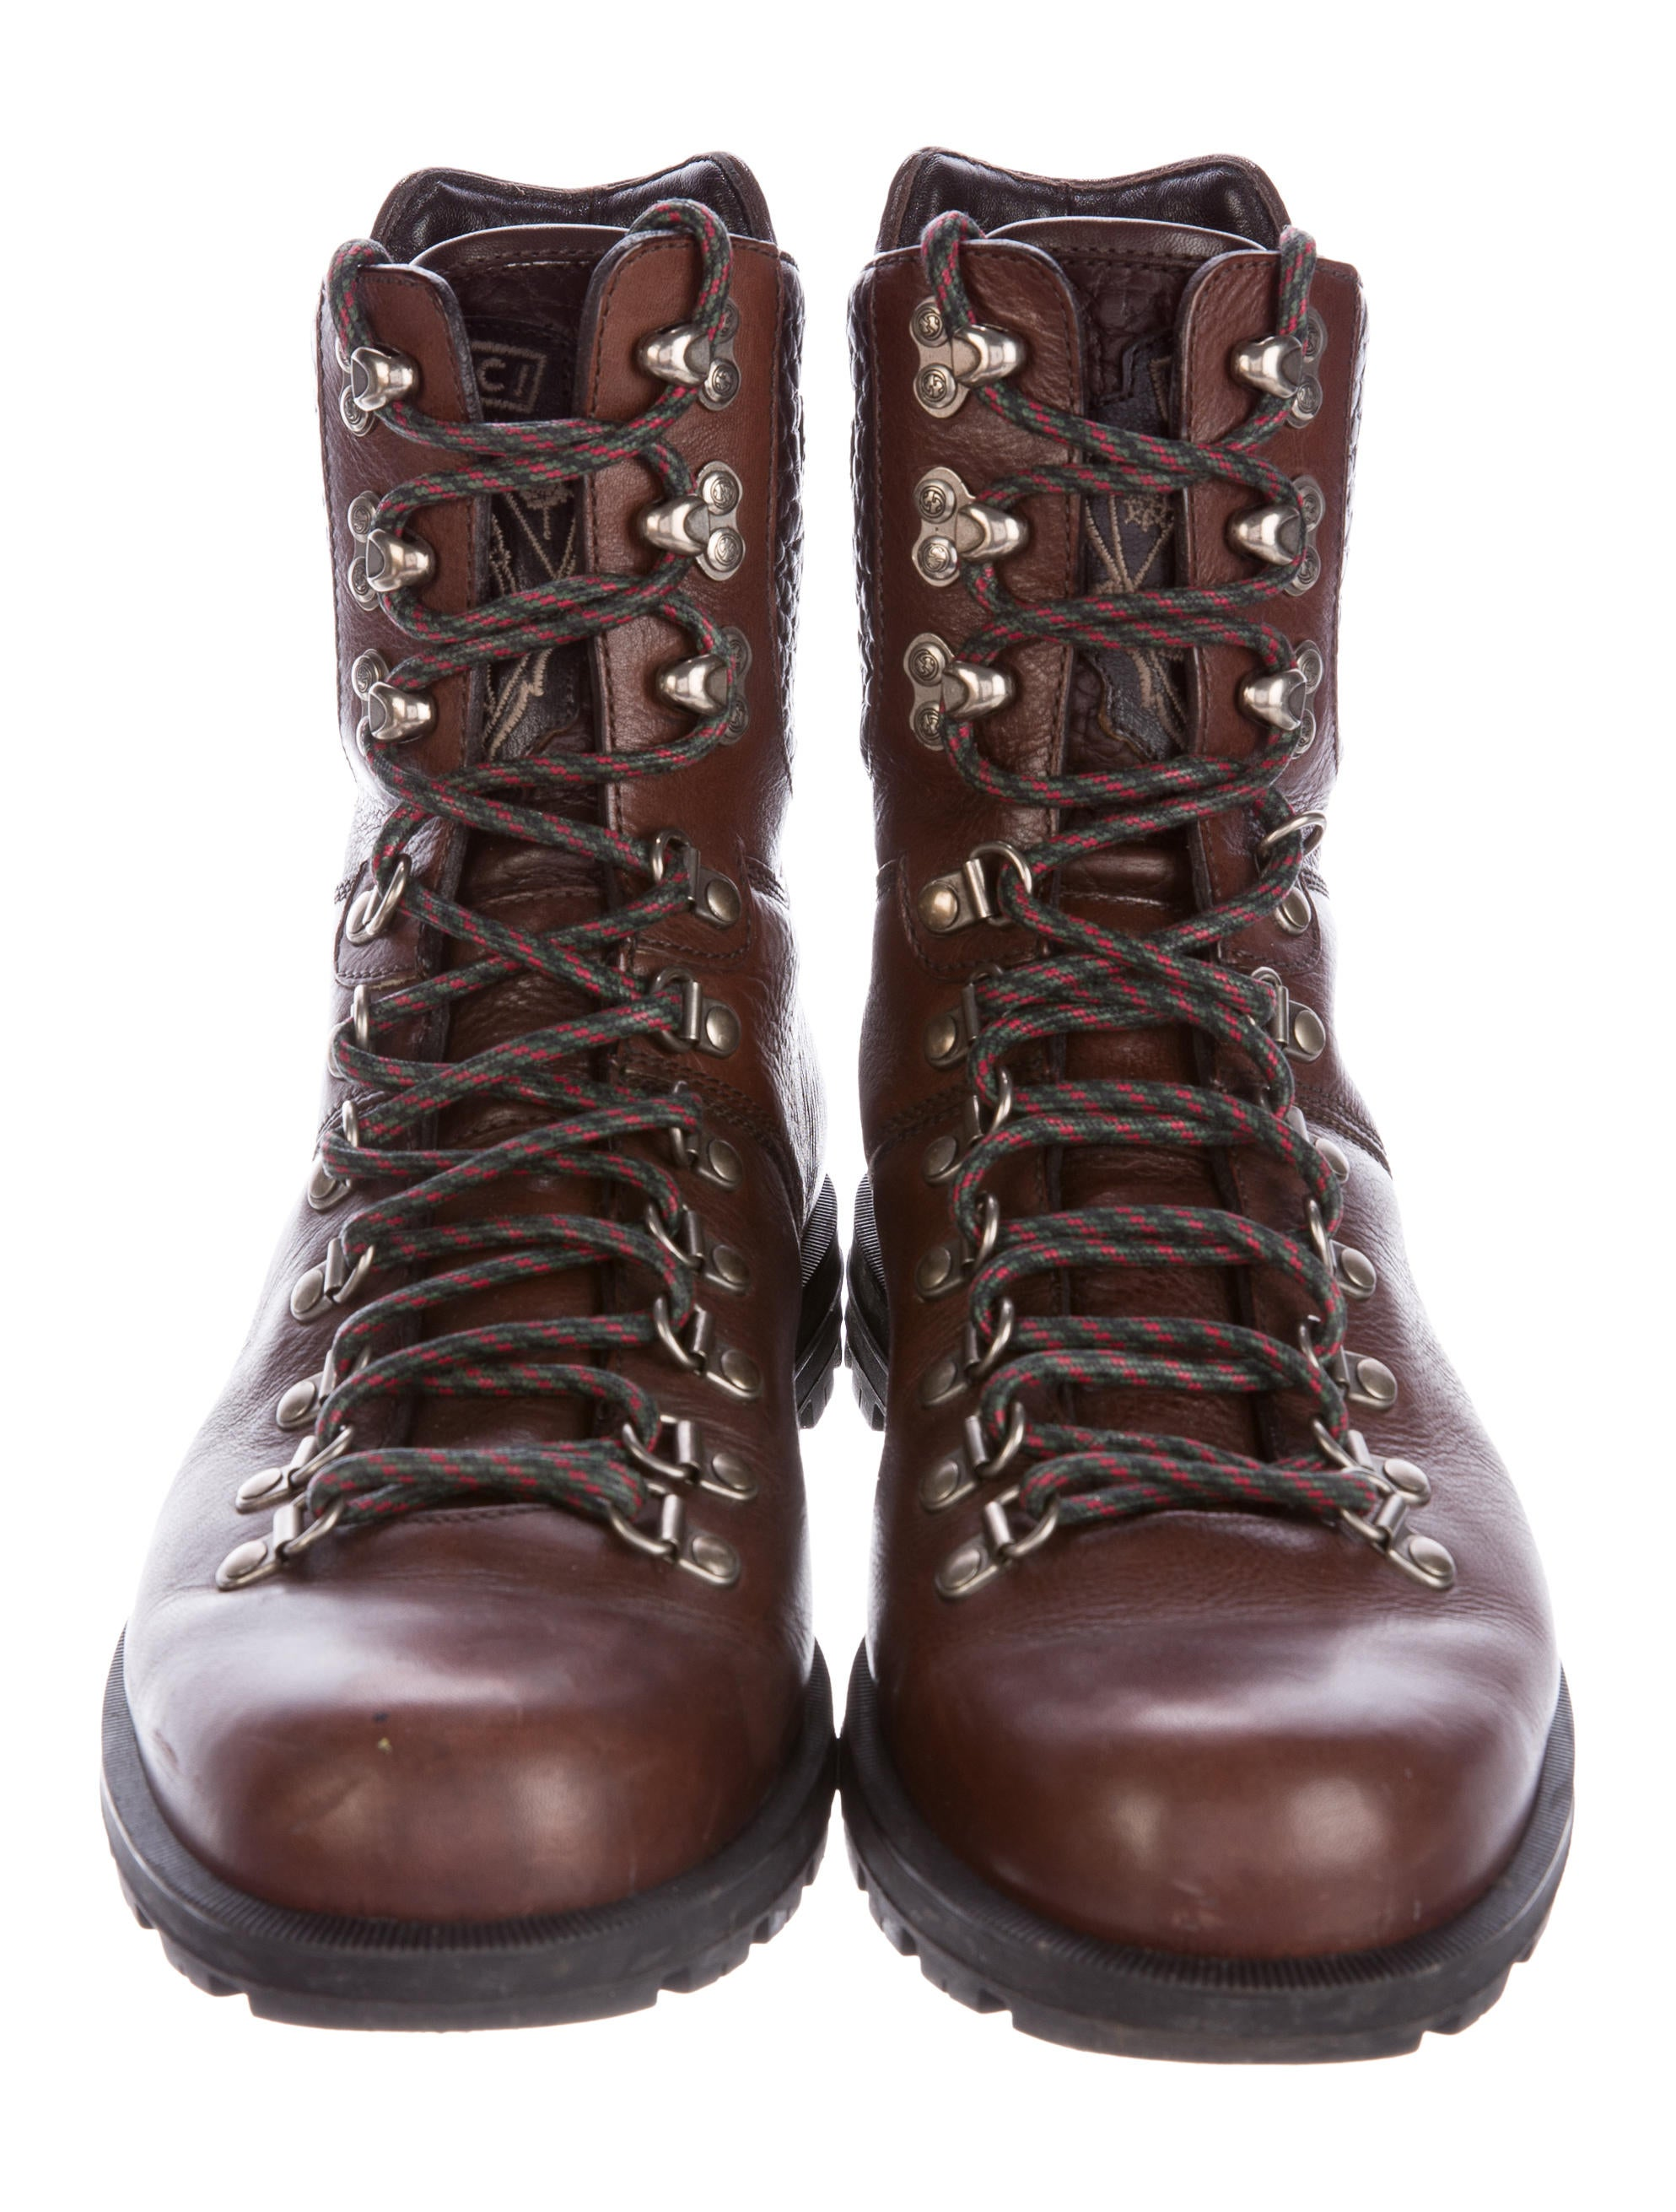 Mens Hiking Boots likewise Grisport Mens Edge Hiking Boot Shoes Sports Outdoor Trekking Footweargrisport Stockistsvarious Styles P 1211 together with Mens Hiking Boots in addition Mens Leather Hiking Boots Sale likewise Mens Hiking Boots. on grisport mens crusader hiking boot